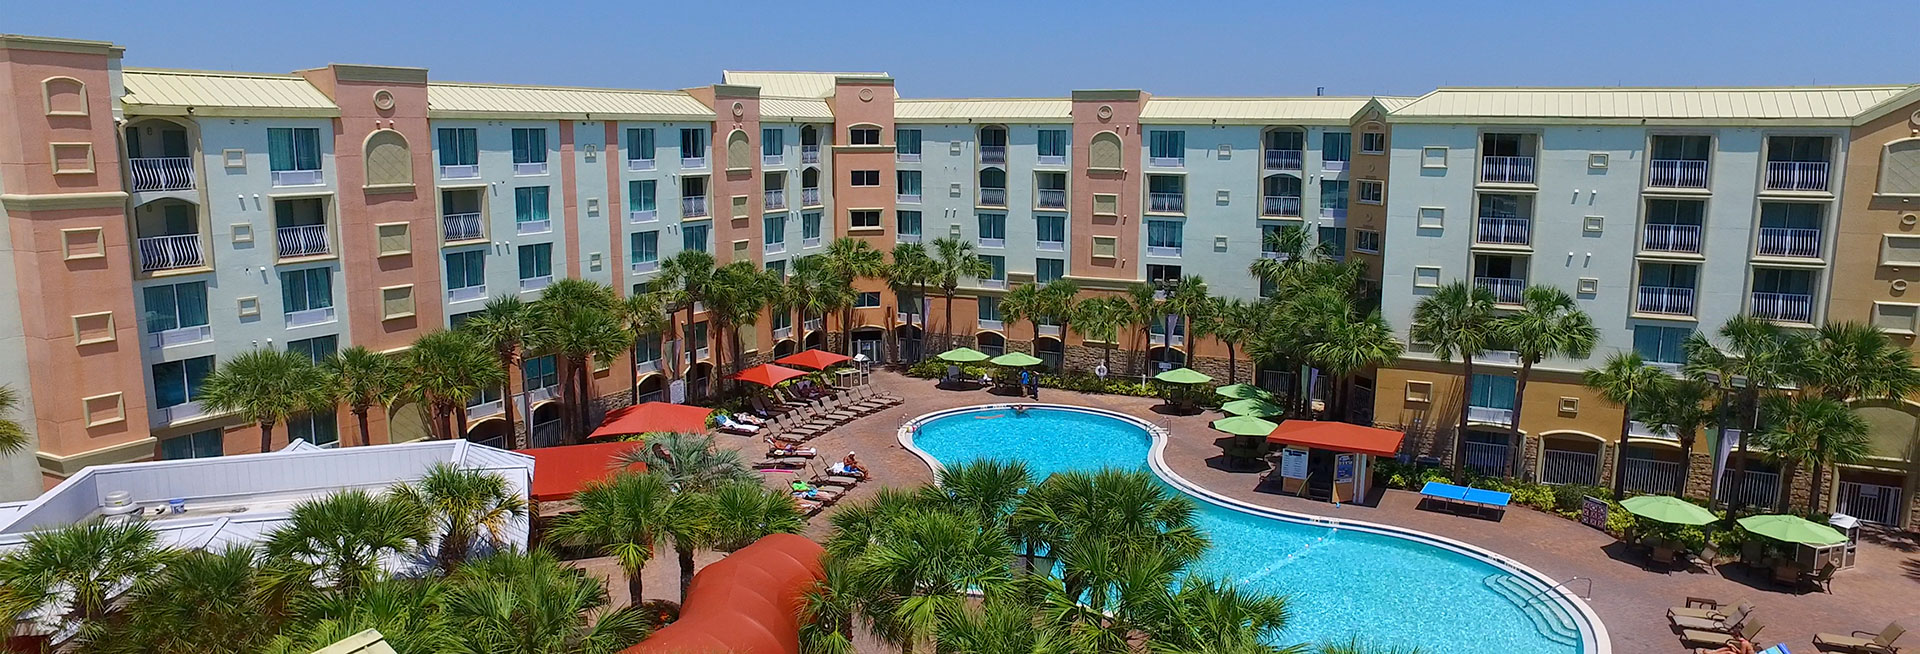 holiday inn resort orlando lake buena vista disney good neighbor